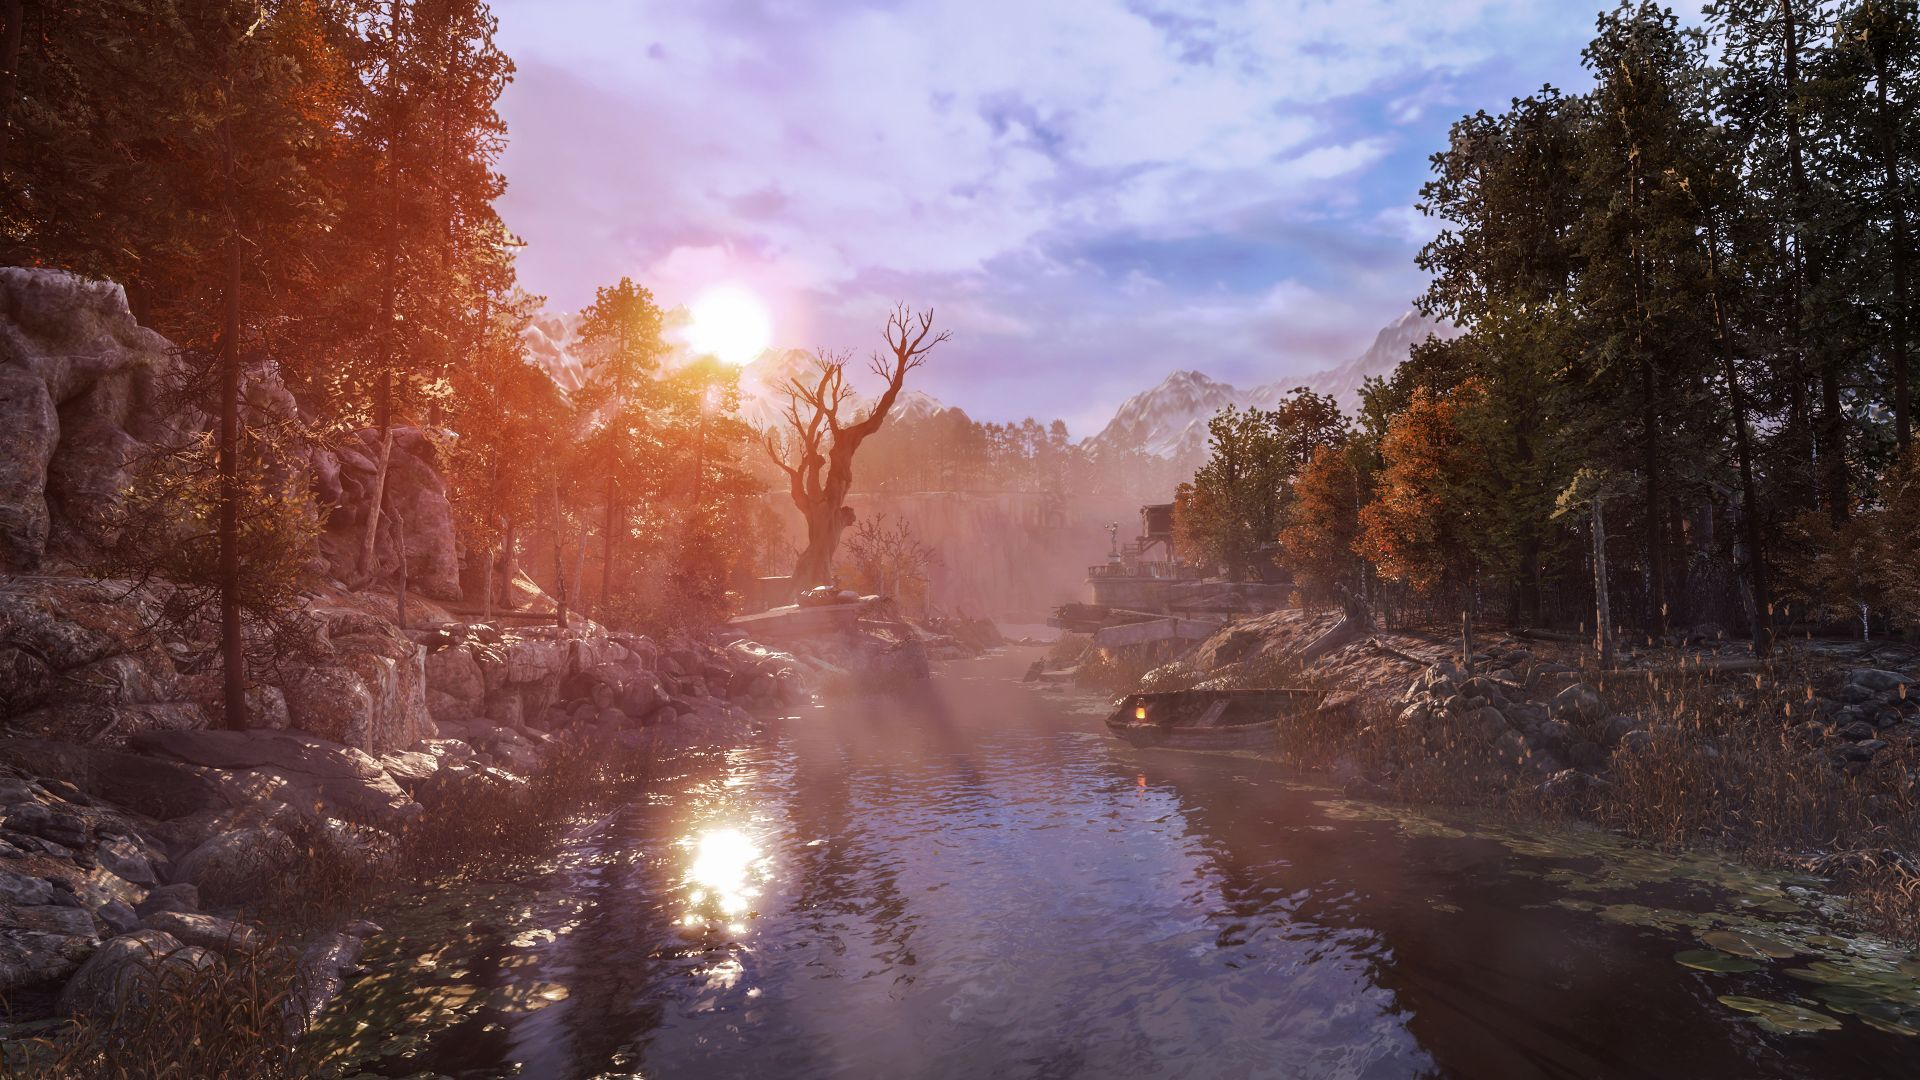 Метро Исход, Metro Exodus, Gamescom 2018, screenshot, 4K (horizontal)